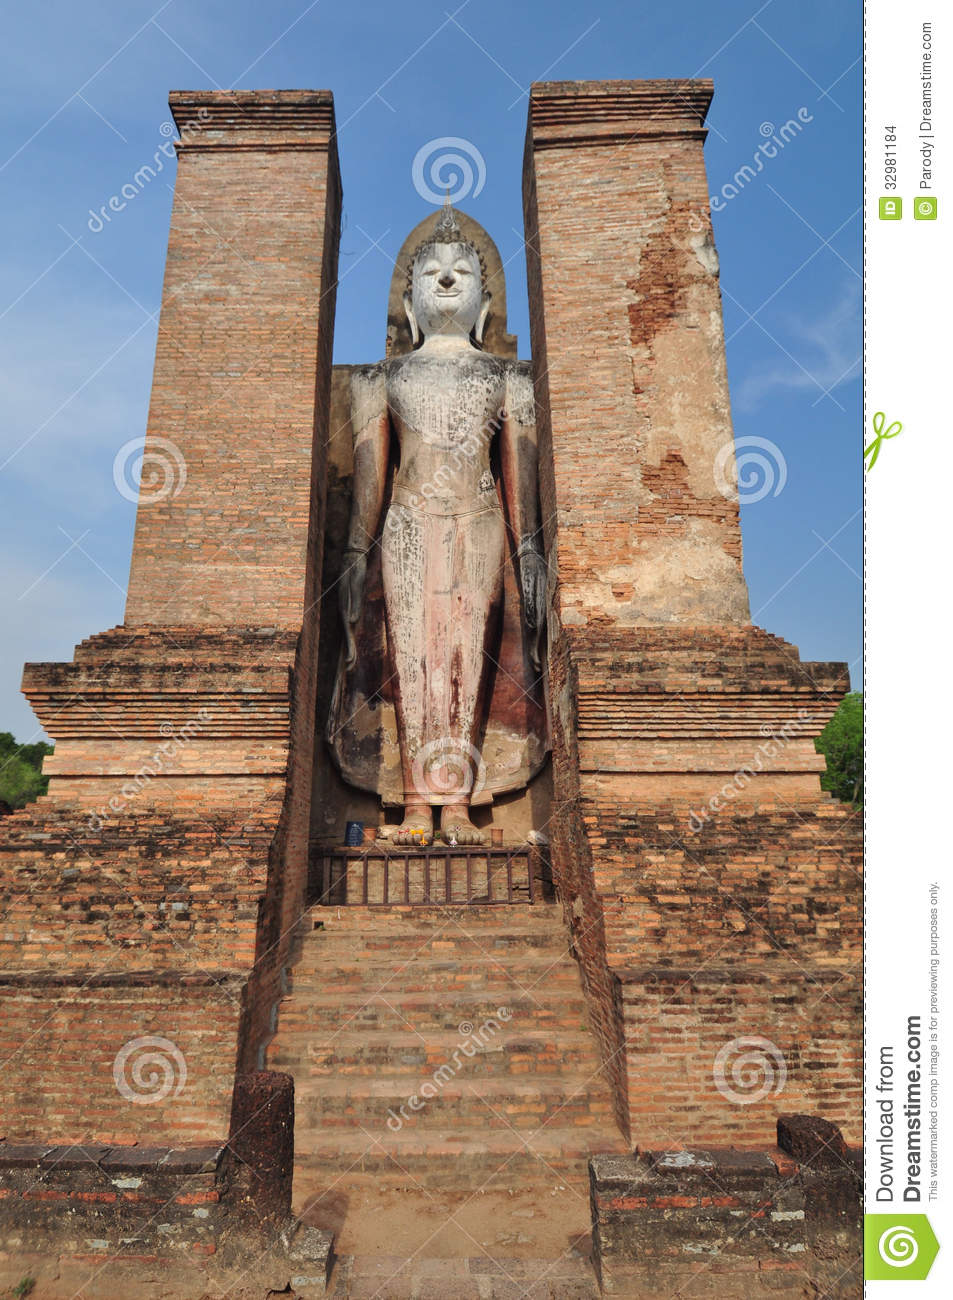 Sukhothai Ruin Old City Country Stock Images - Image: 32981184